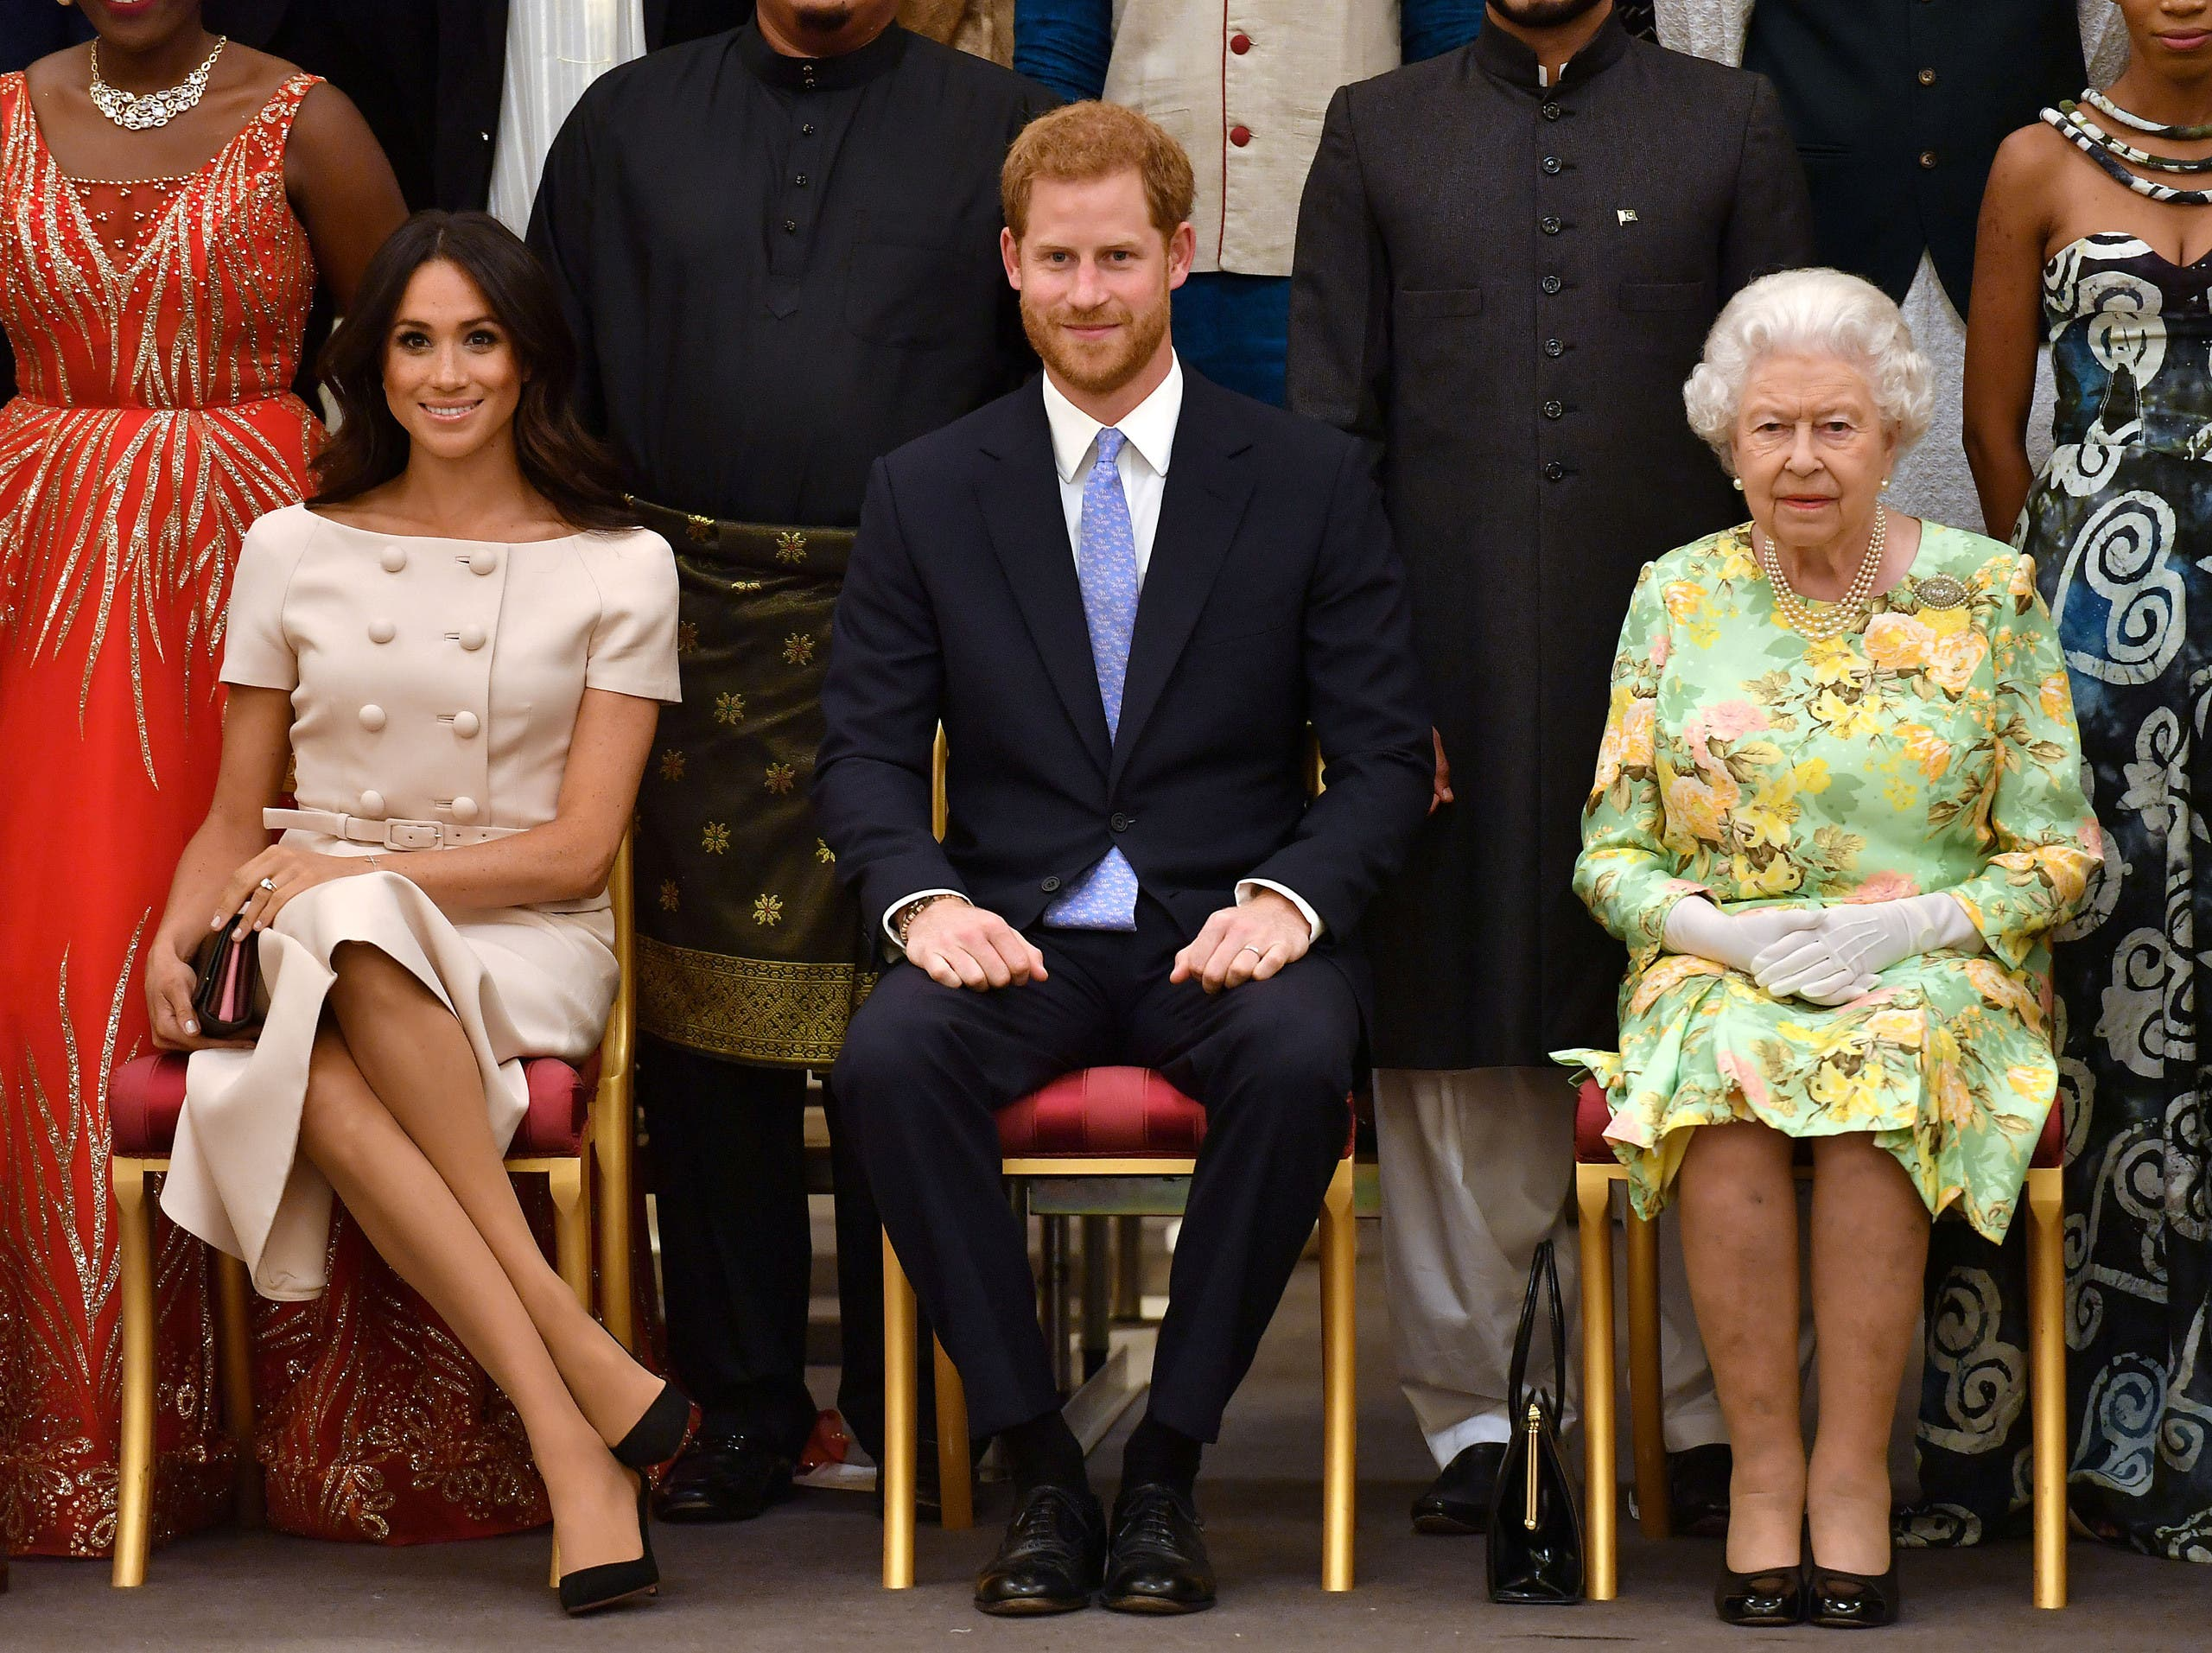 Britain's Queen Elizabeth, Prince Harry and Meghan, the Duchess of Sussex pose for a picture with some of Queen's Young Leaders at a Buckingham Palace reception following the final Queen's Young Leaders Awards Ceremony, in London, Britain June 26, 2018. (Reuters)